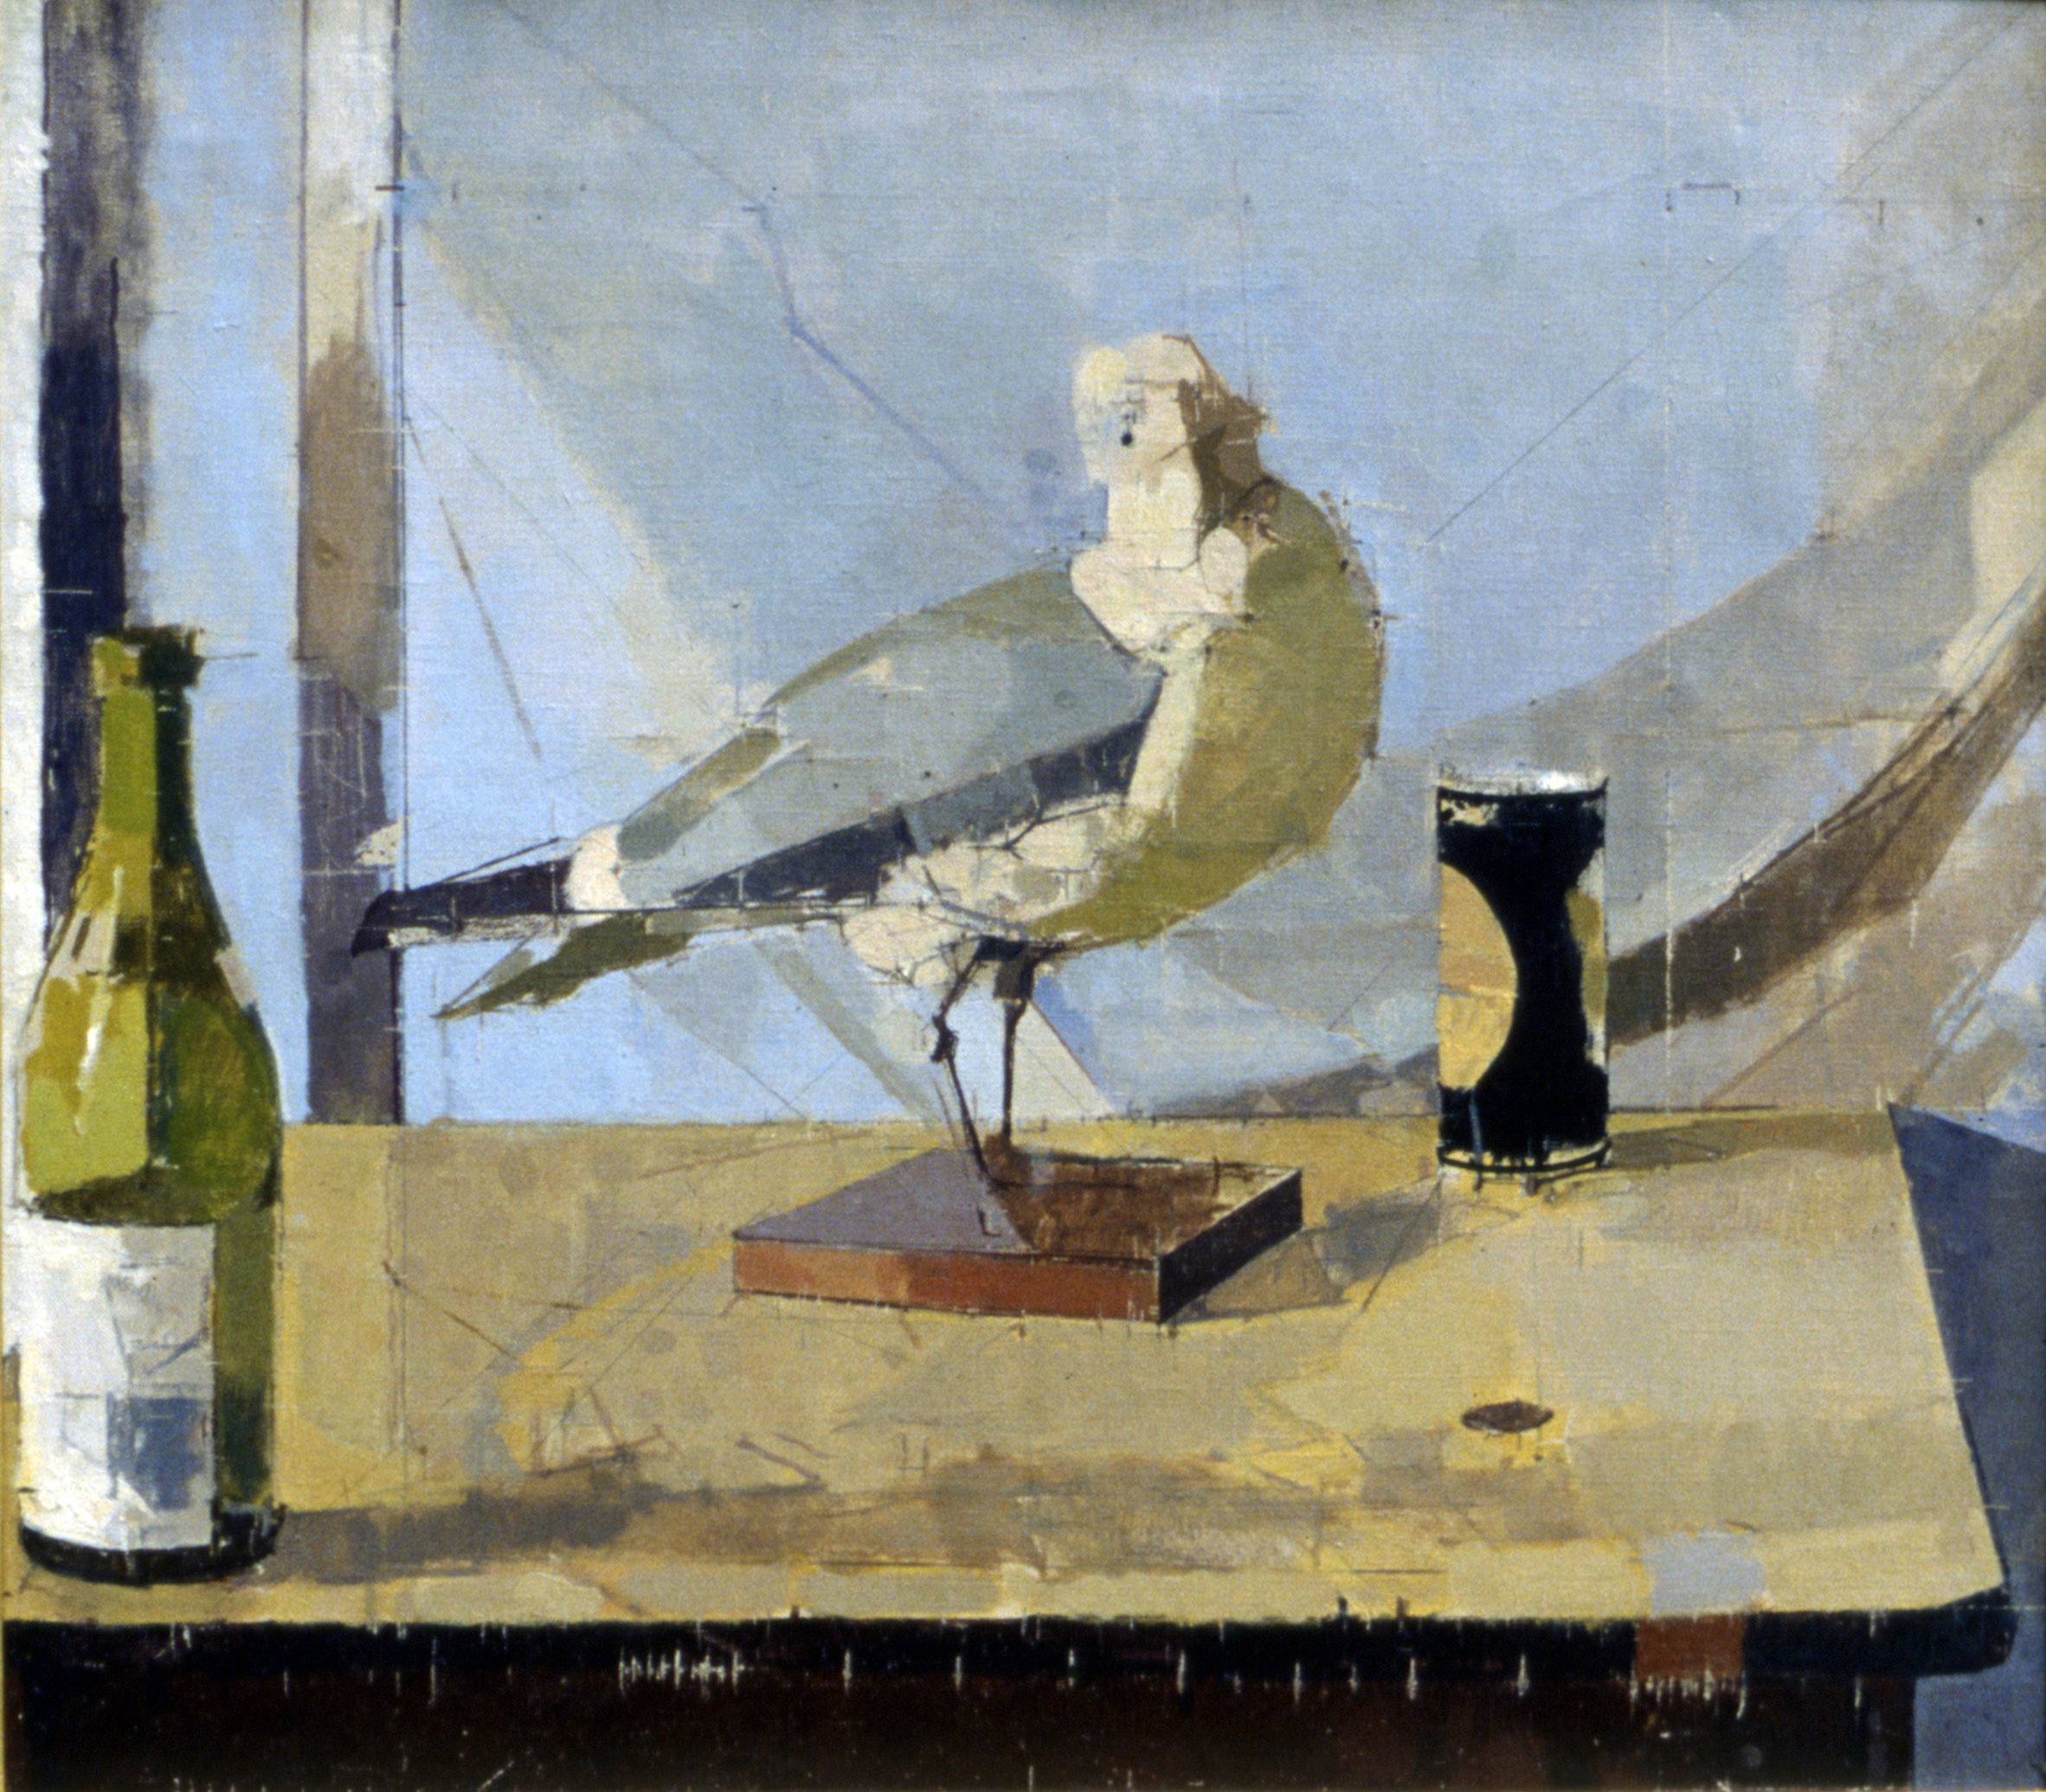 Still Life with Stuffed Bird